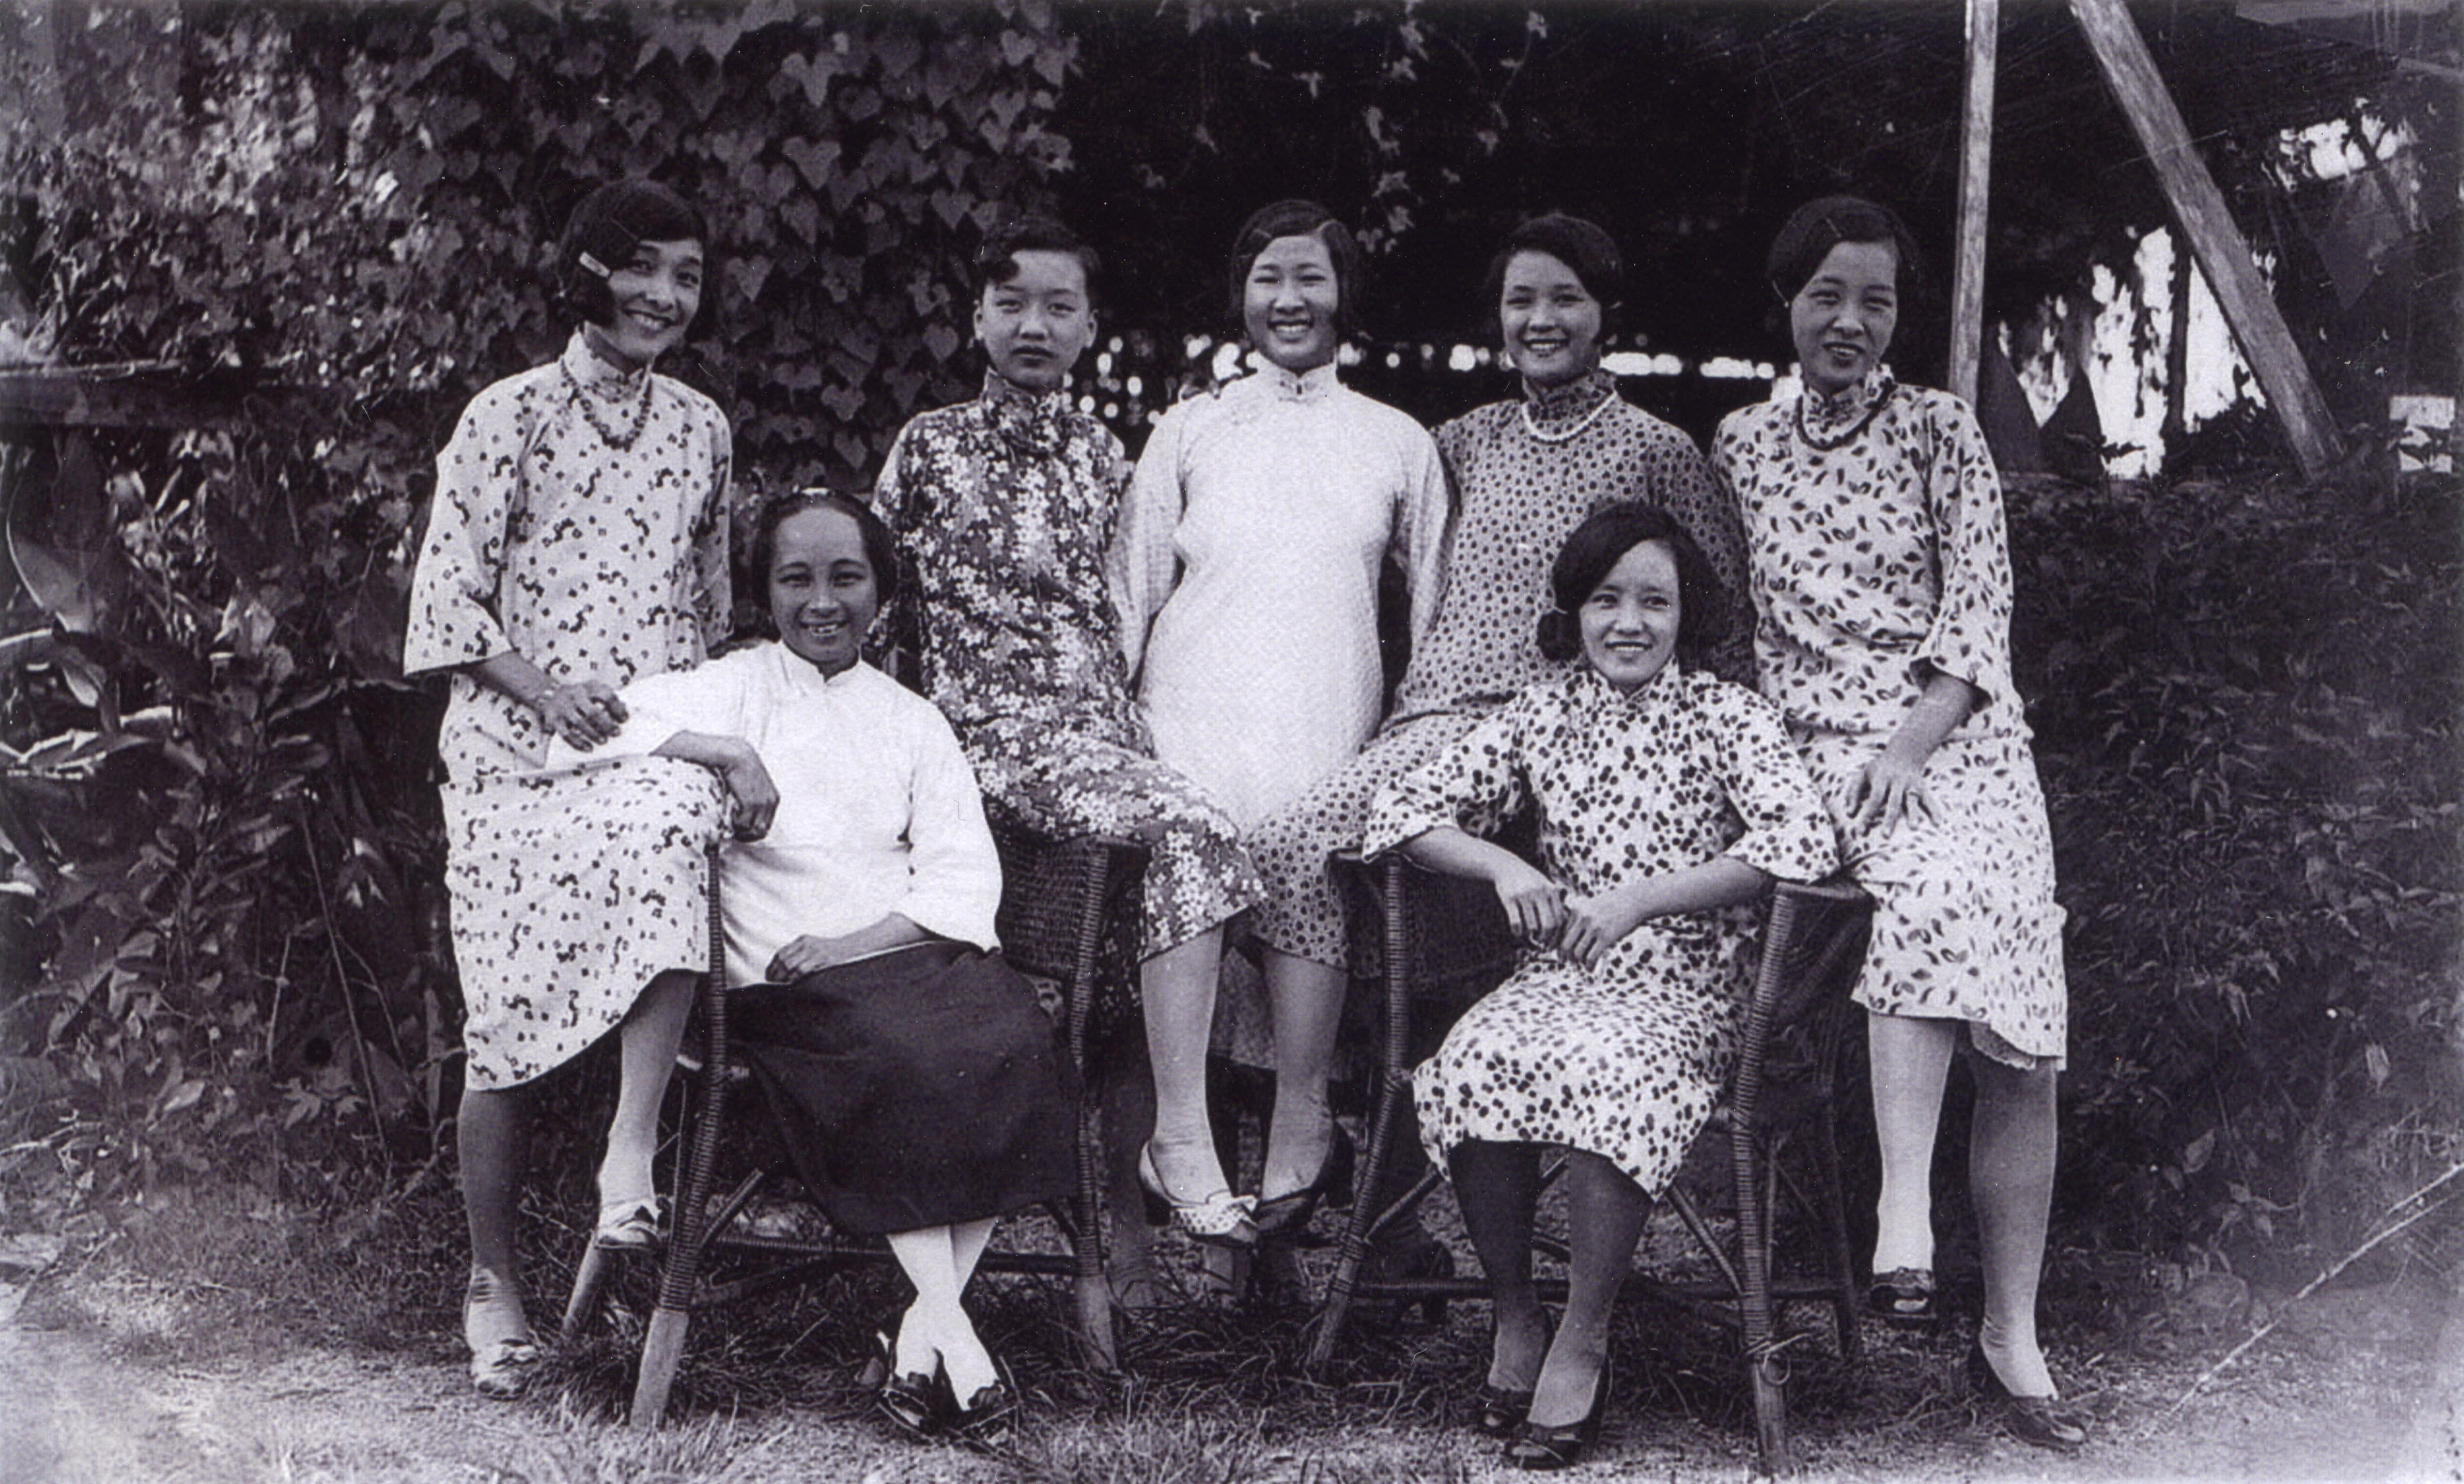 Black and white photo. Seven women standing together and smiling.